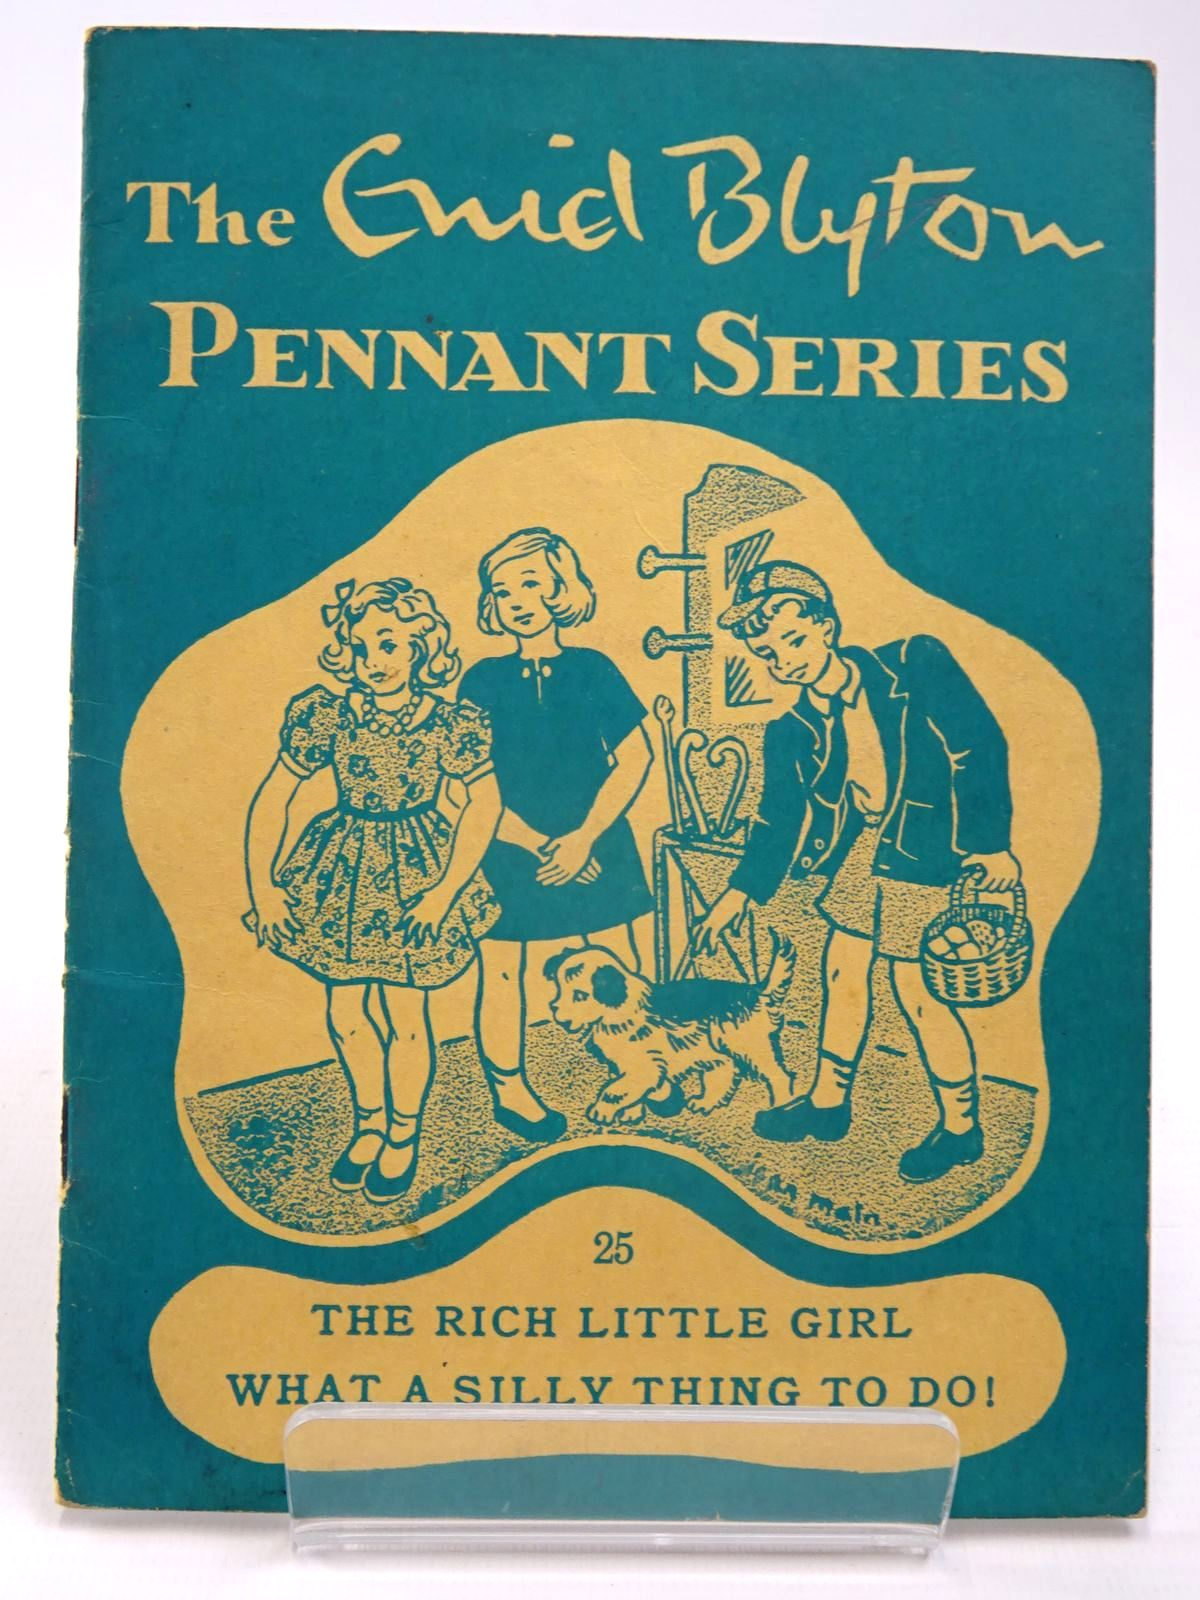 Photo of THE ENID BLYTON PENNANT SERIES No. 25 THE RICH LITTLE GIRL / WHAT A SILLY THING TO DO! written by Blyton, Enid illustrated by Soper, Eileen<br />Main, Jean published by Macmillan &amp; Co. Ltd. (STOCK CODE: 2130514)  for sale by Stella & Rose's Books